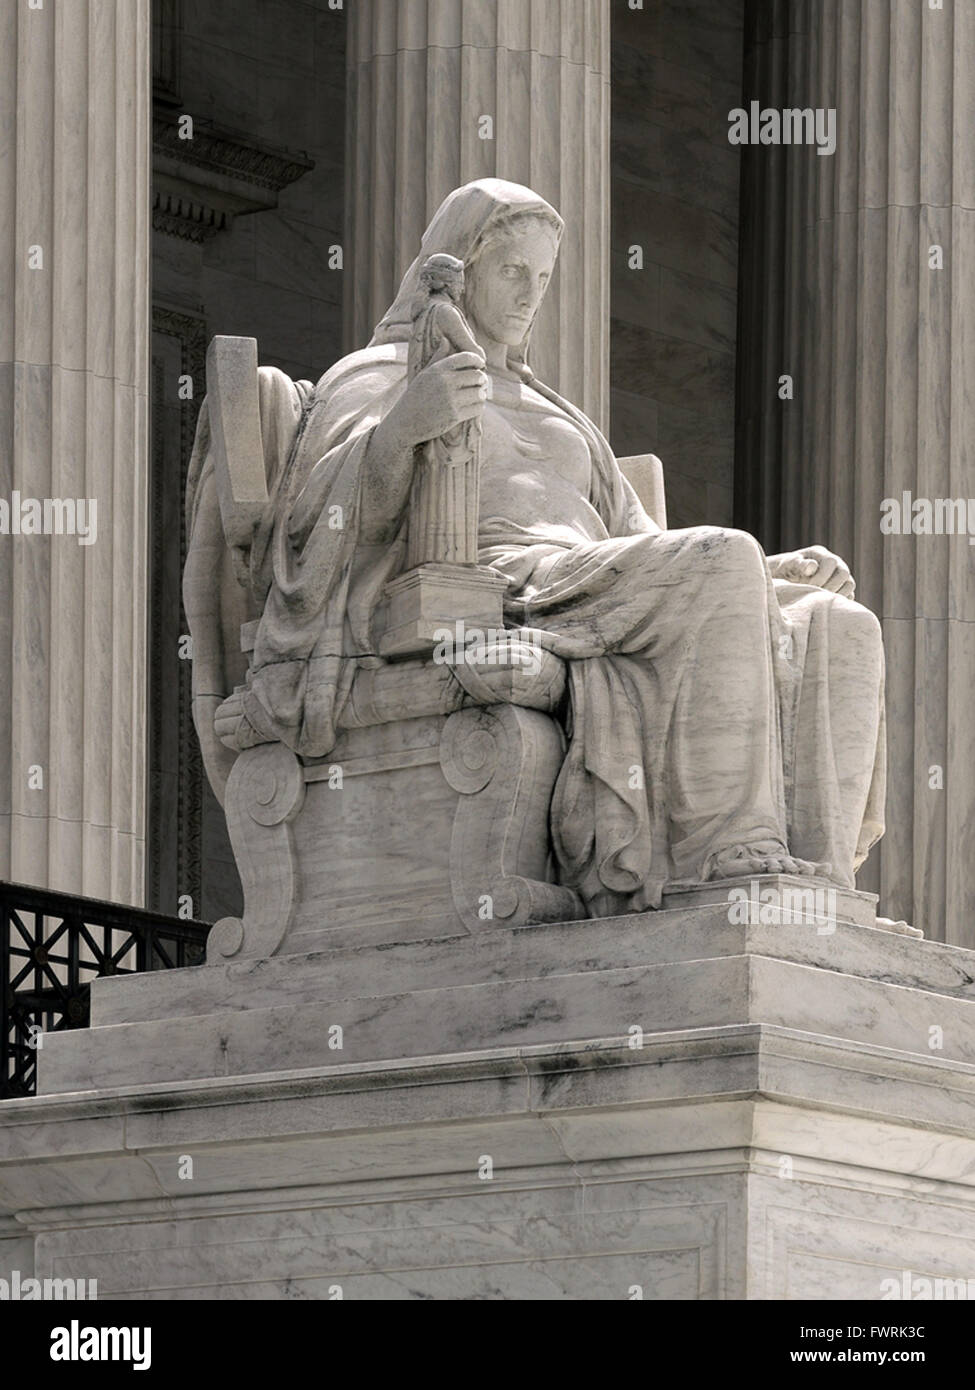 Statue of the Contemplation Of Justice by artist James Earle Fraser on the Supreme Court Building main steps in - Stock Image